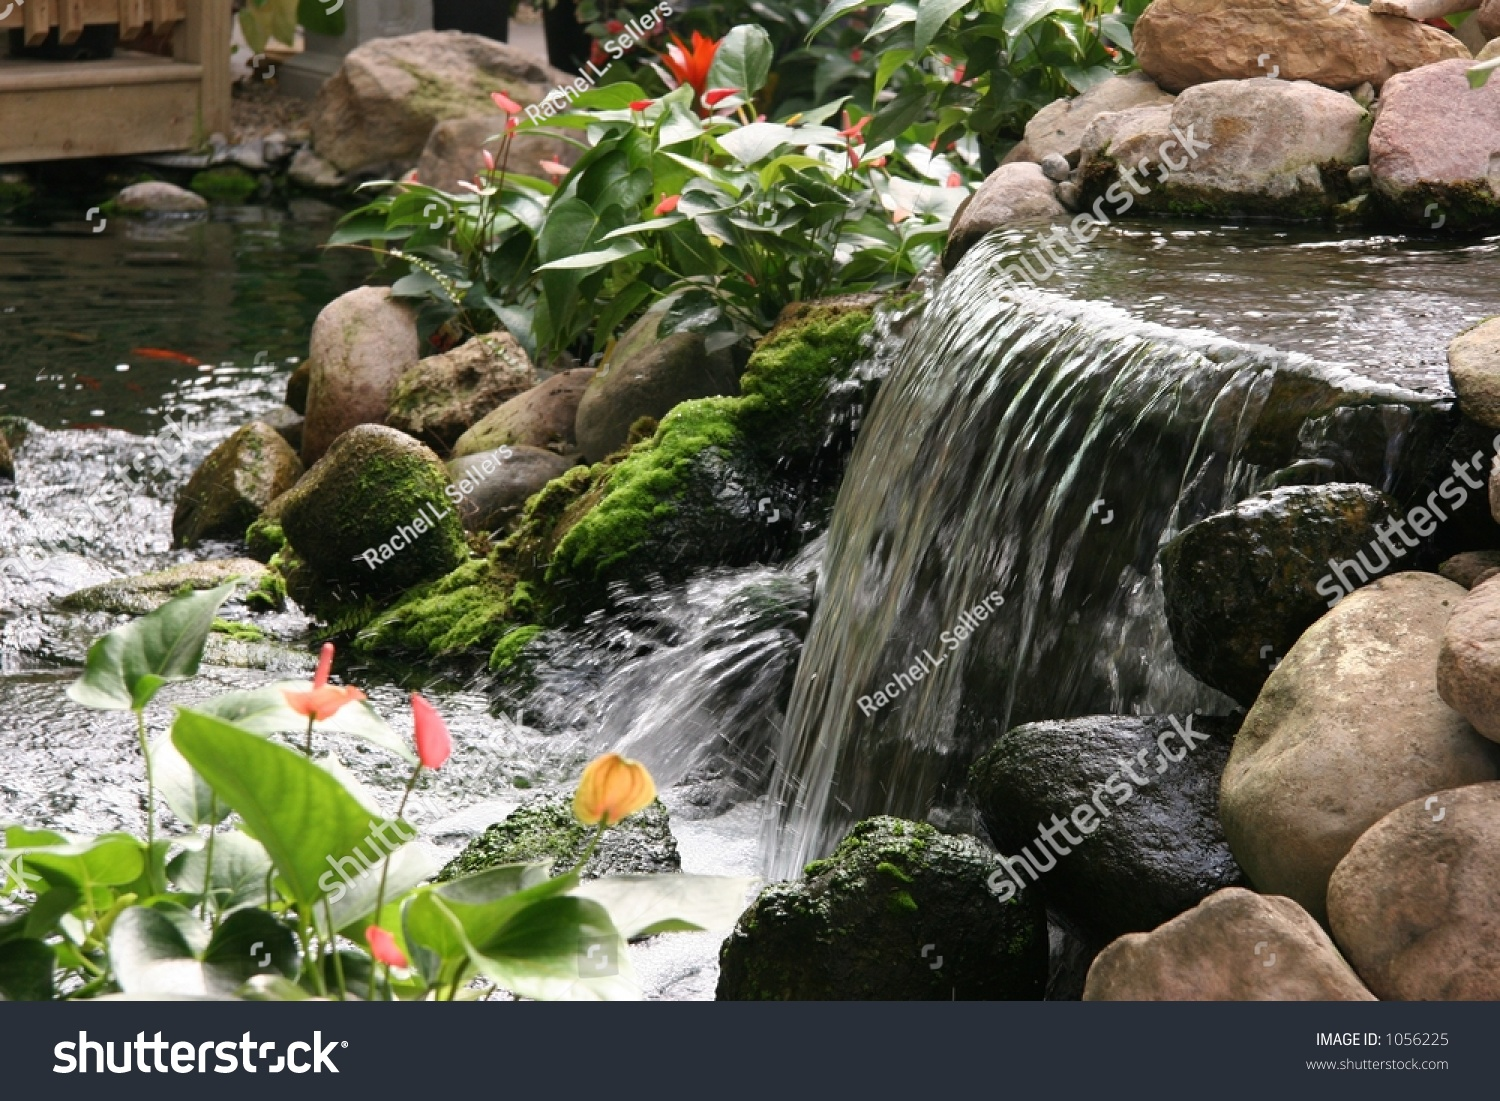 Tropical Indoor Water Garden Stock Photo 1056225 Shutterstock